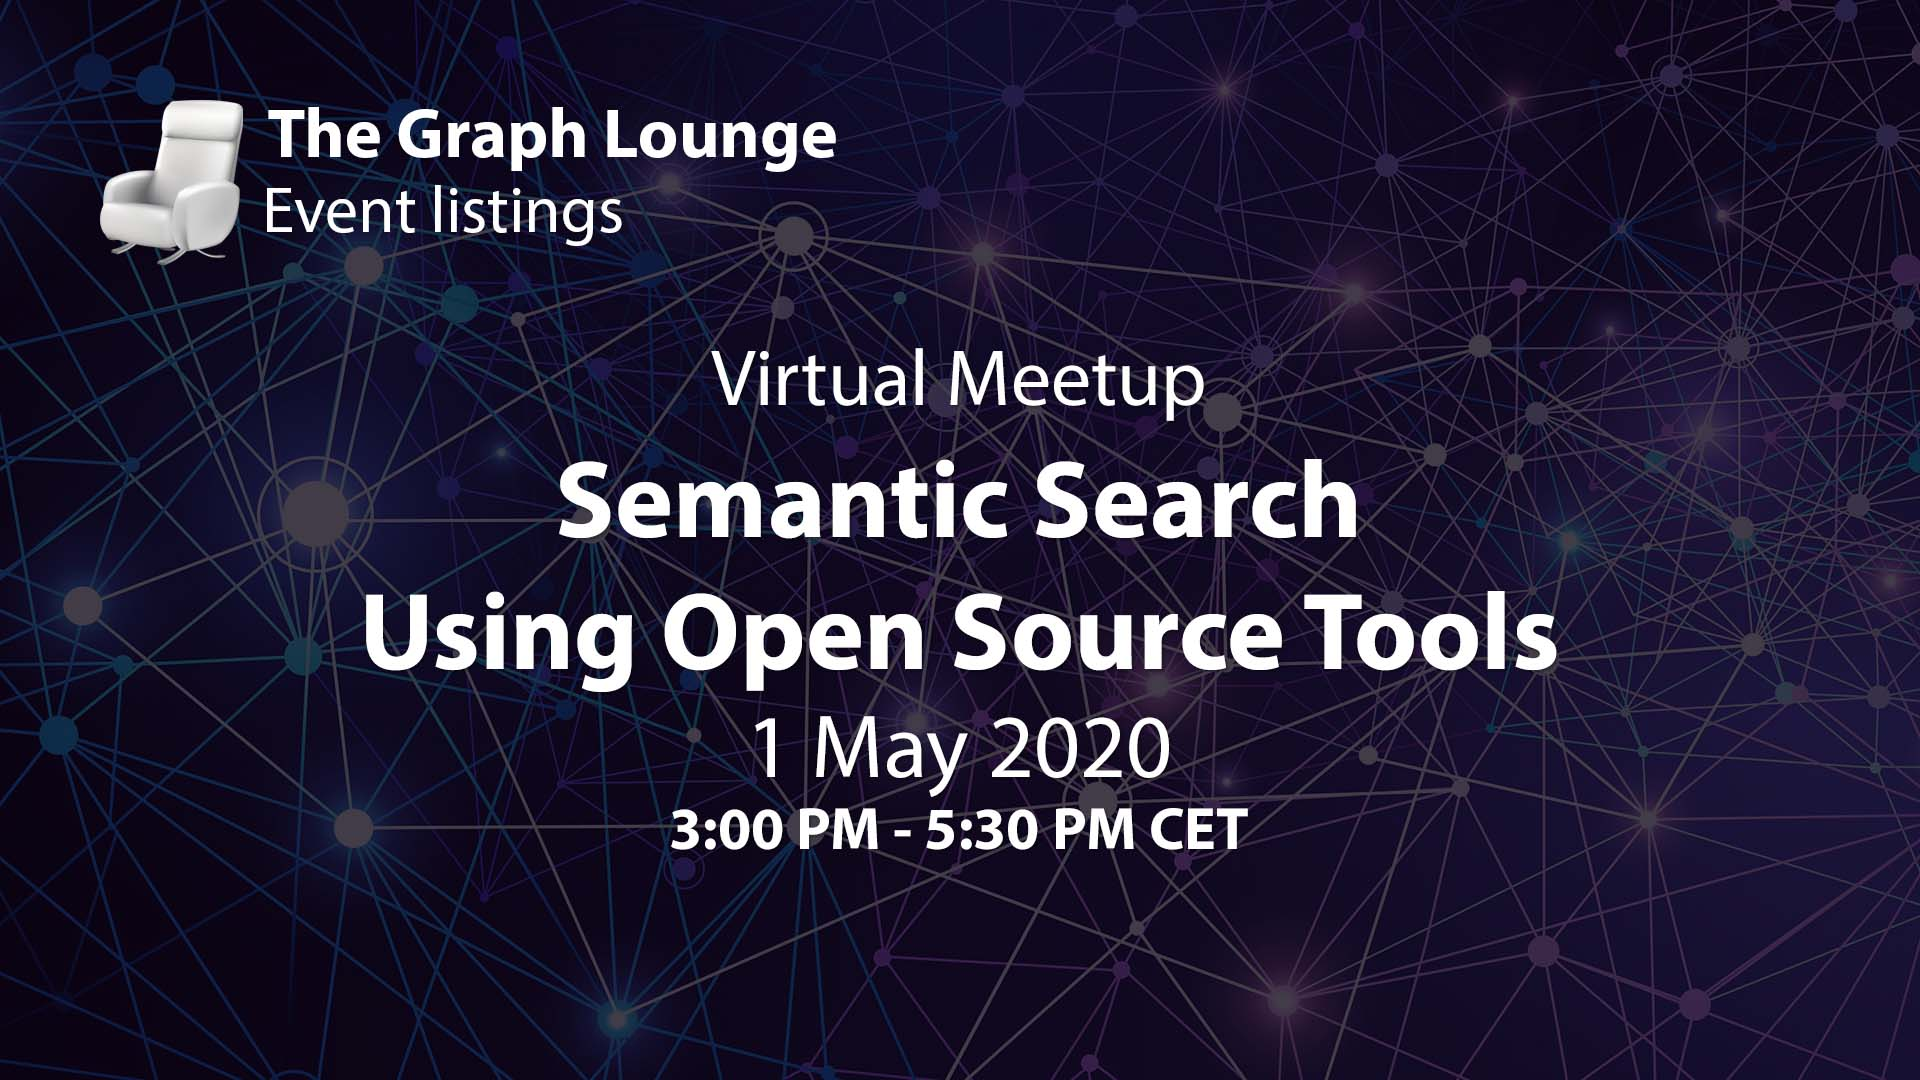 Semantic Search Using Open Source Tools